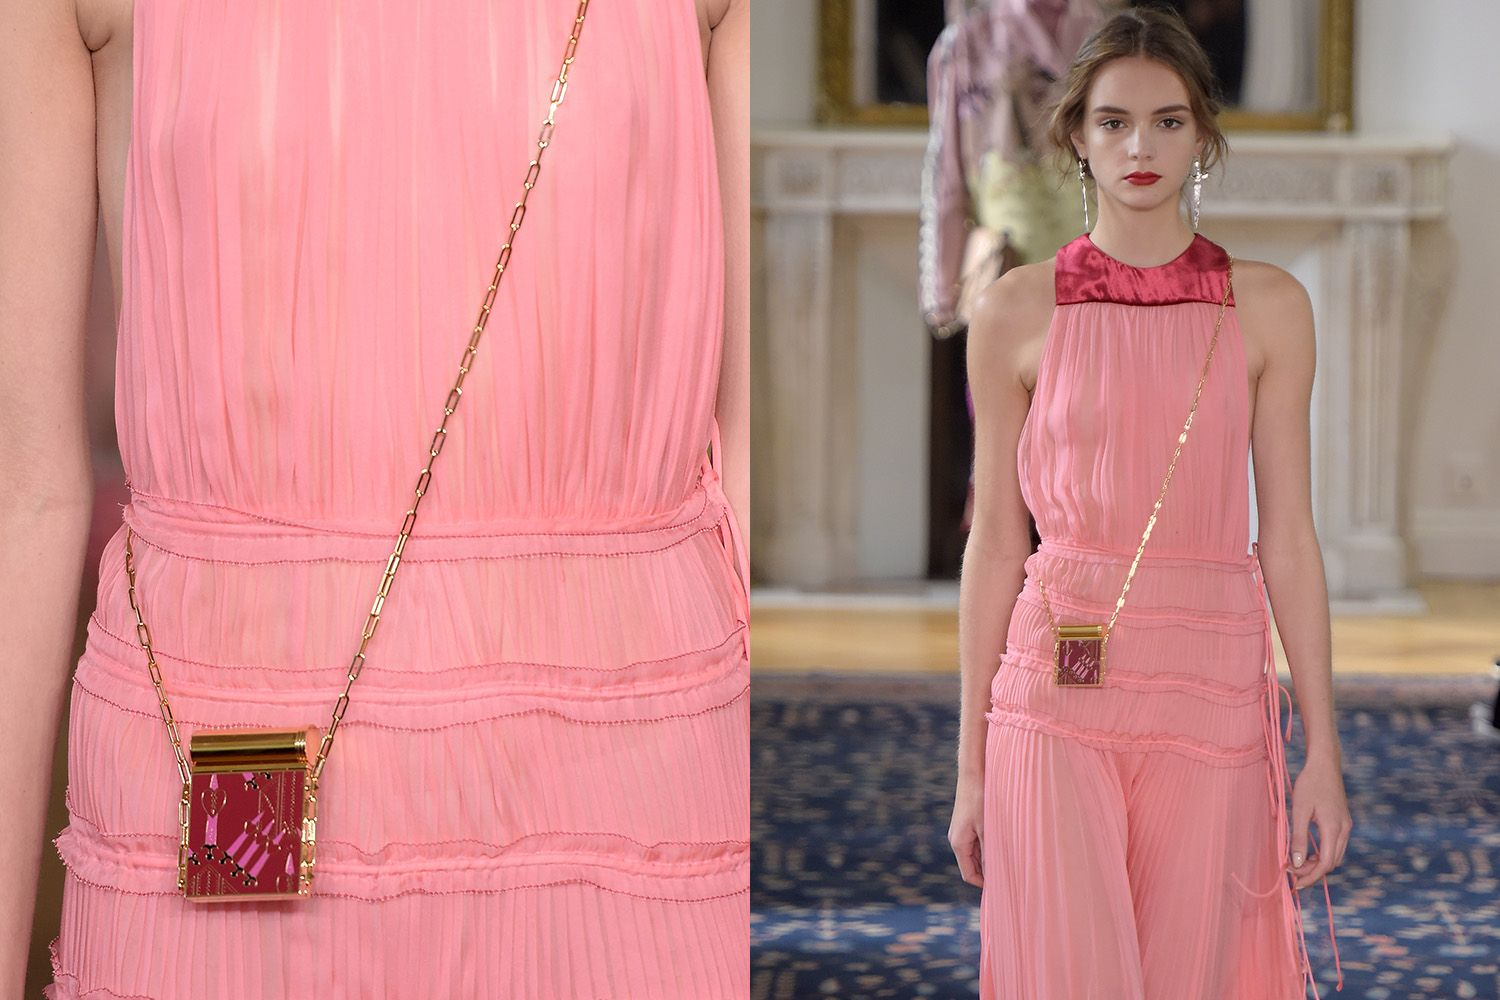 The Micro Bag: A Trend Too Far? http://ift.tt/2dEfEgJ #InStyleUK #Fashion